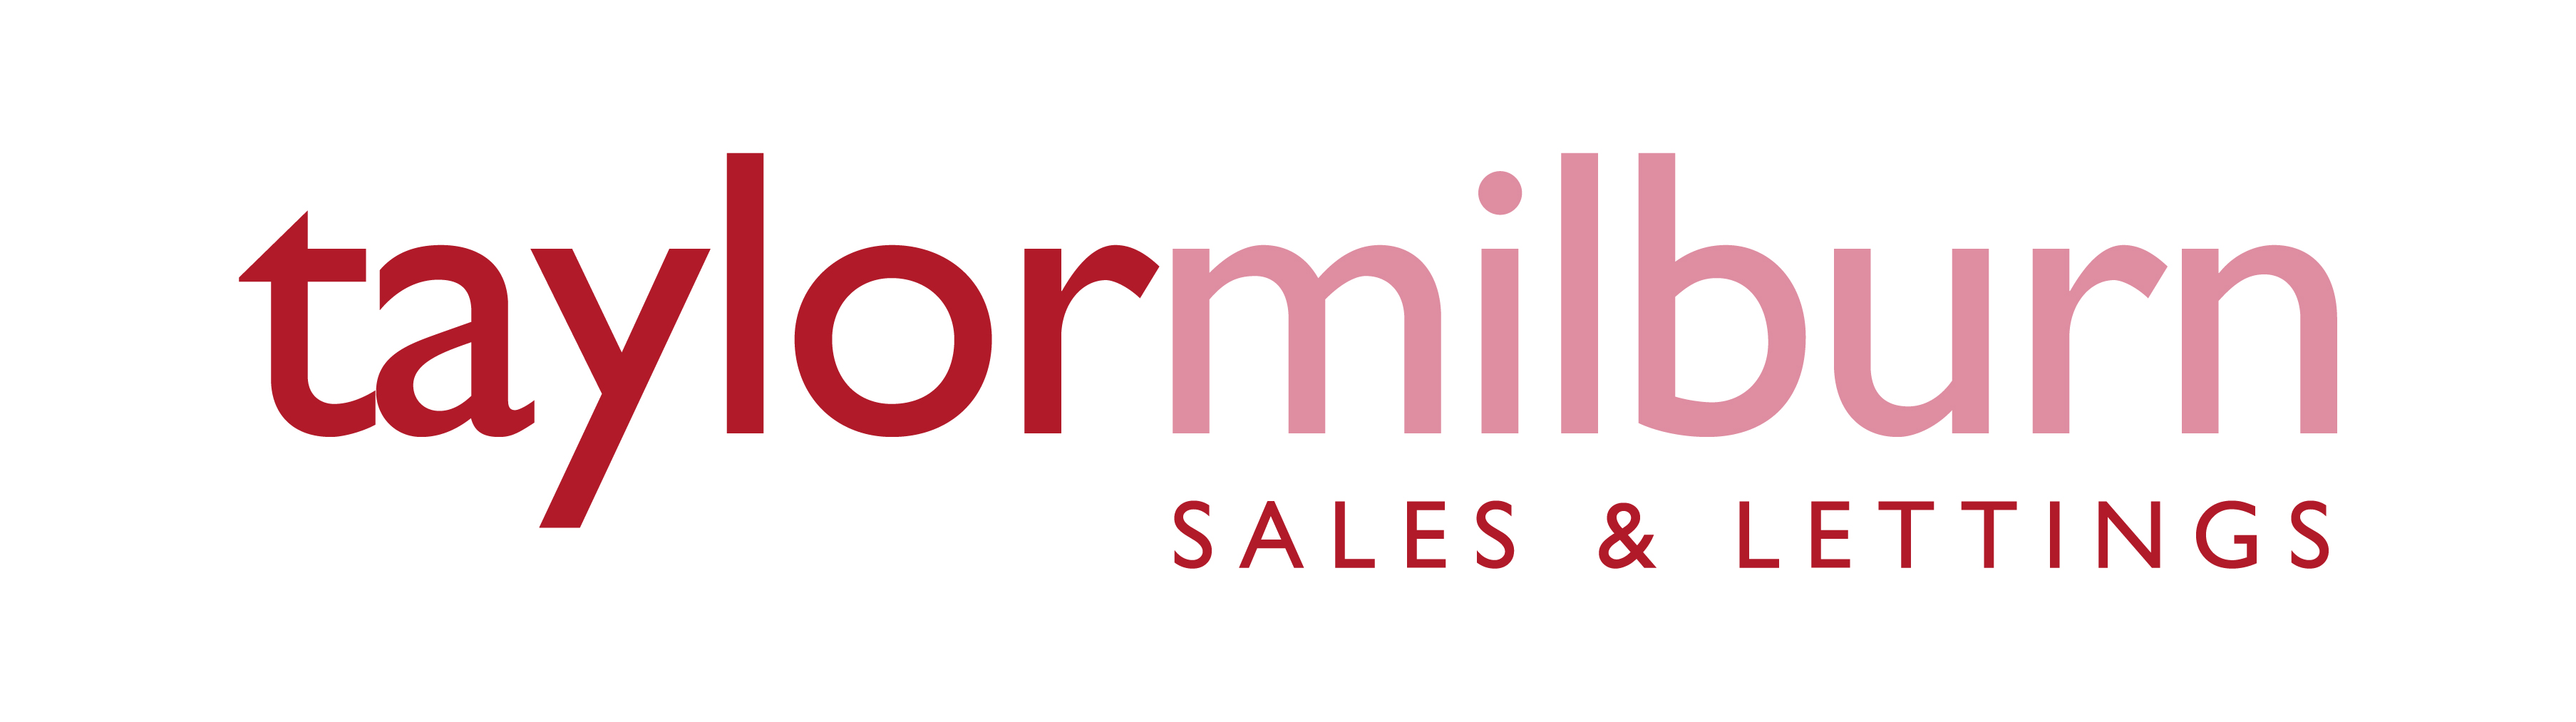 tm-saleslettings-master-logos-19sep14-rgb-300dpi